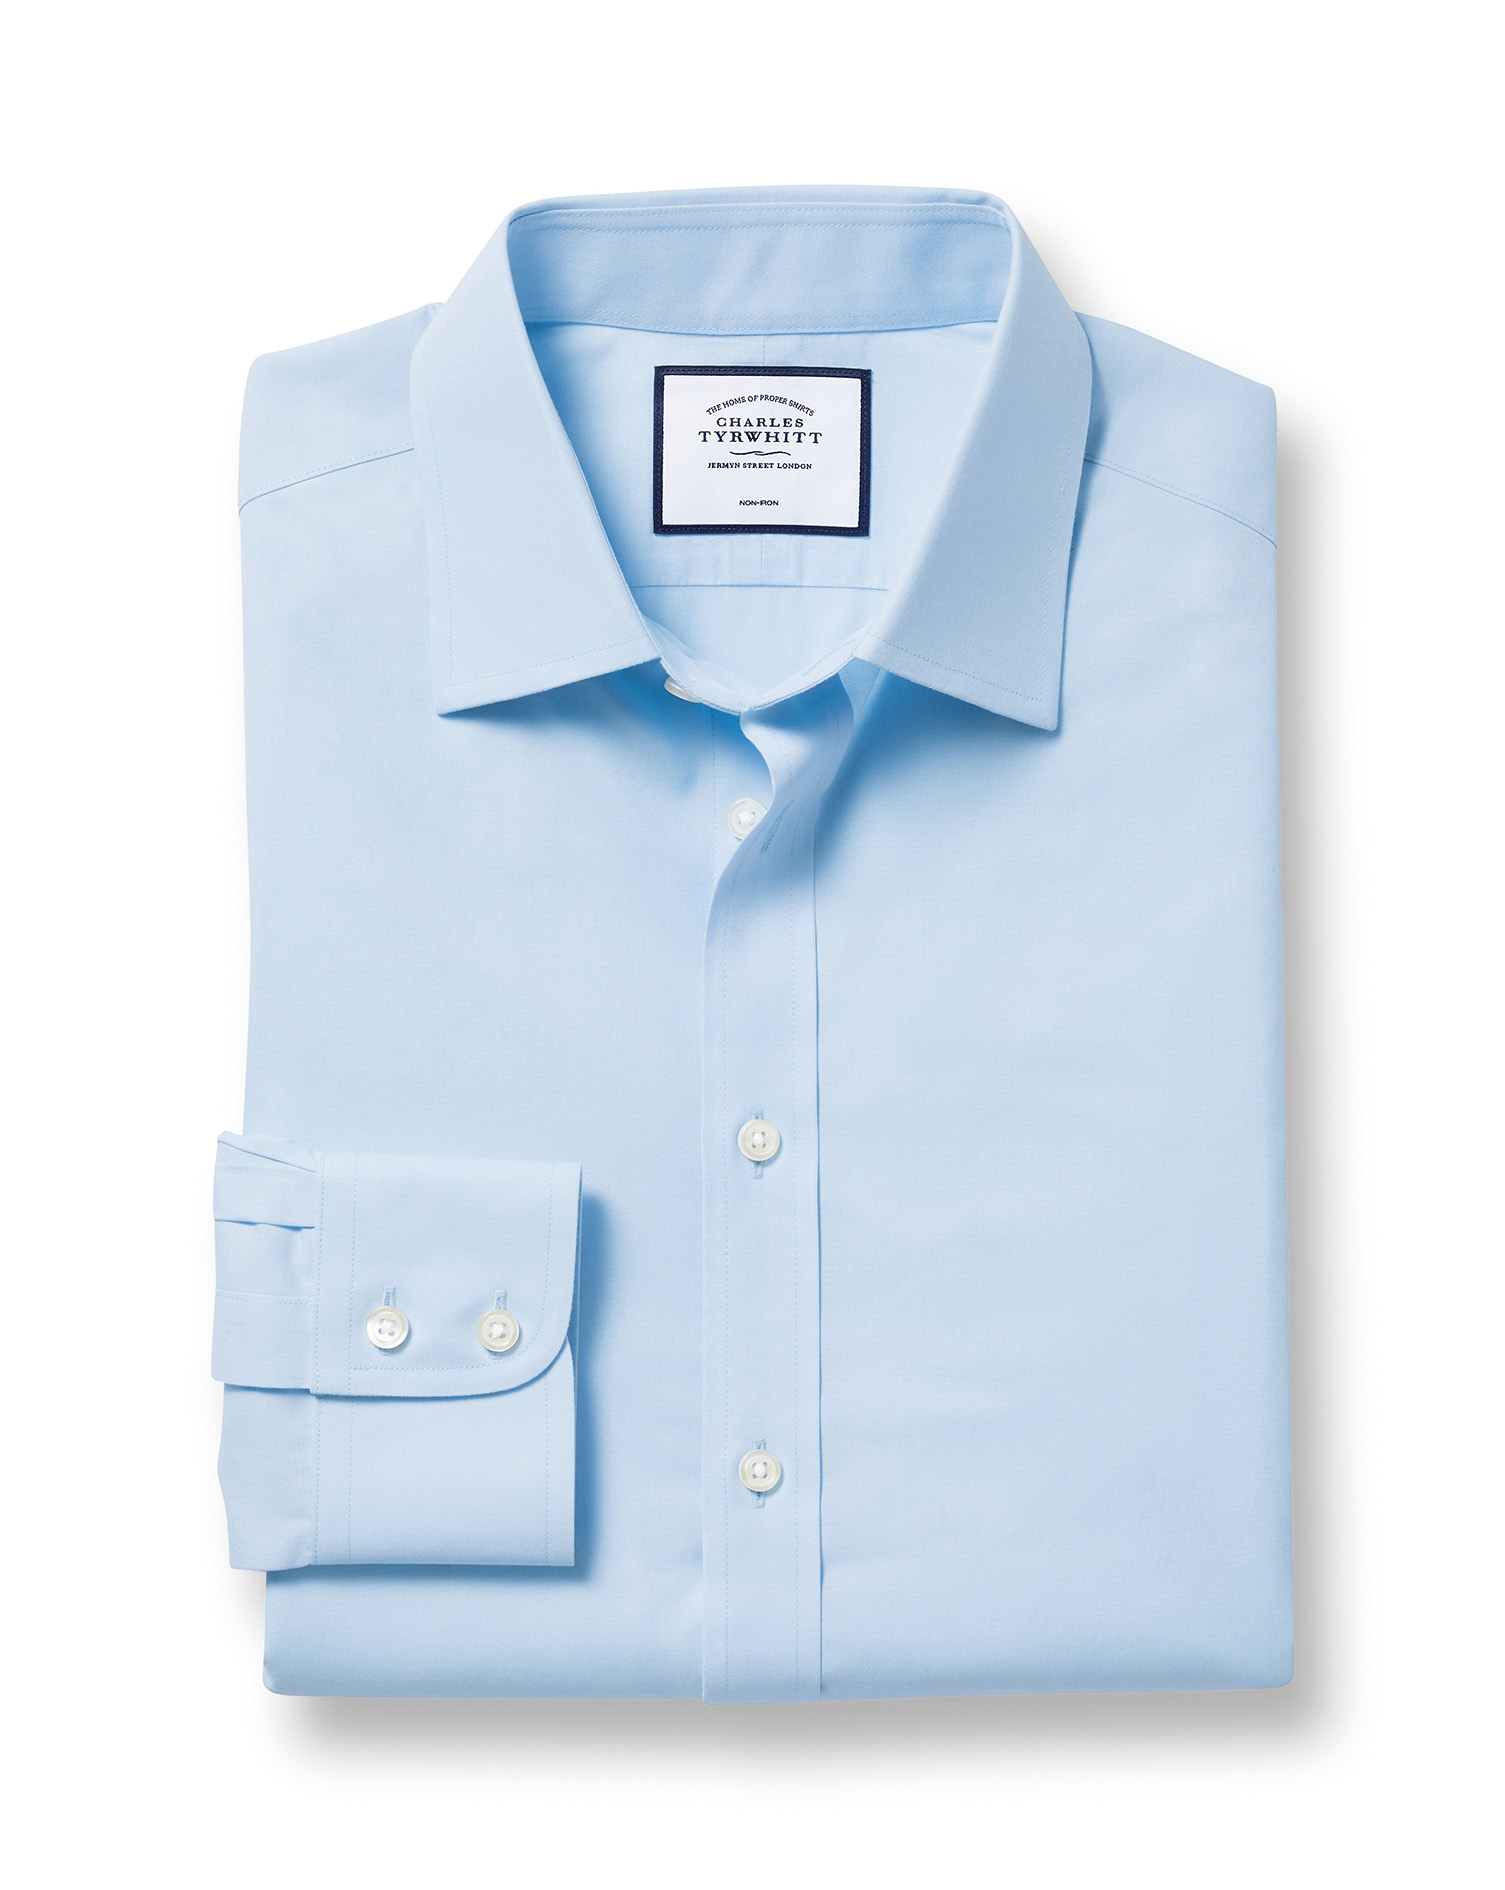 Classic Fit Non-Iron Poplin Sky Blue Cotton Formal Shirt Double Cuff Size 15.5/34 by Charles Tyrwhit